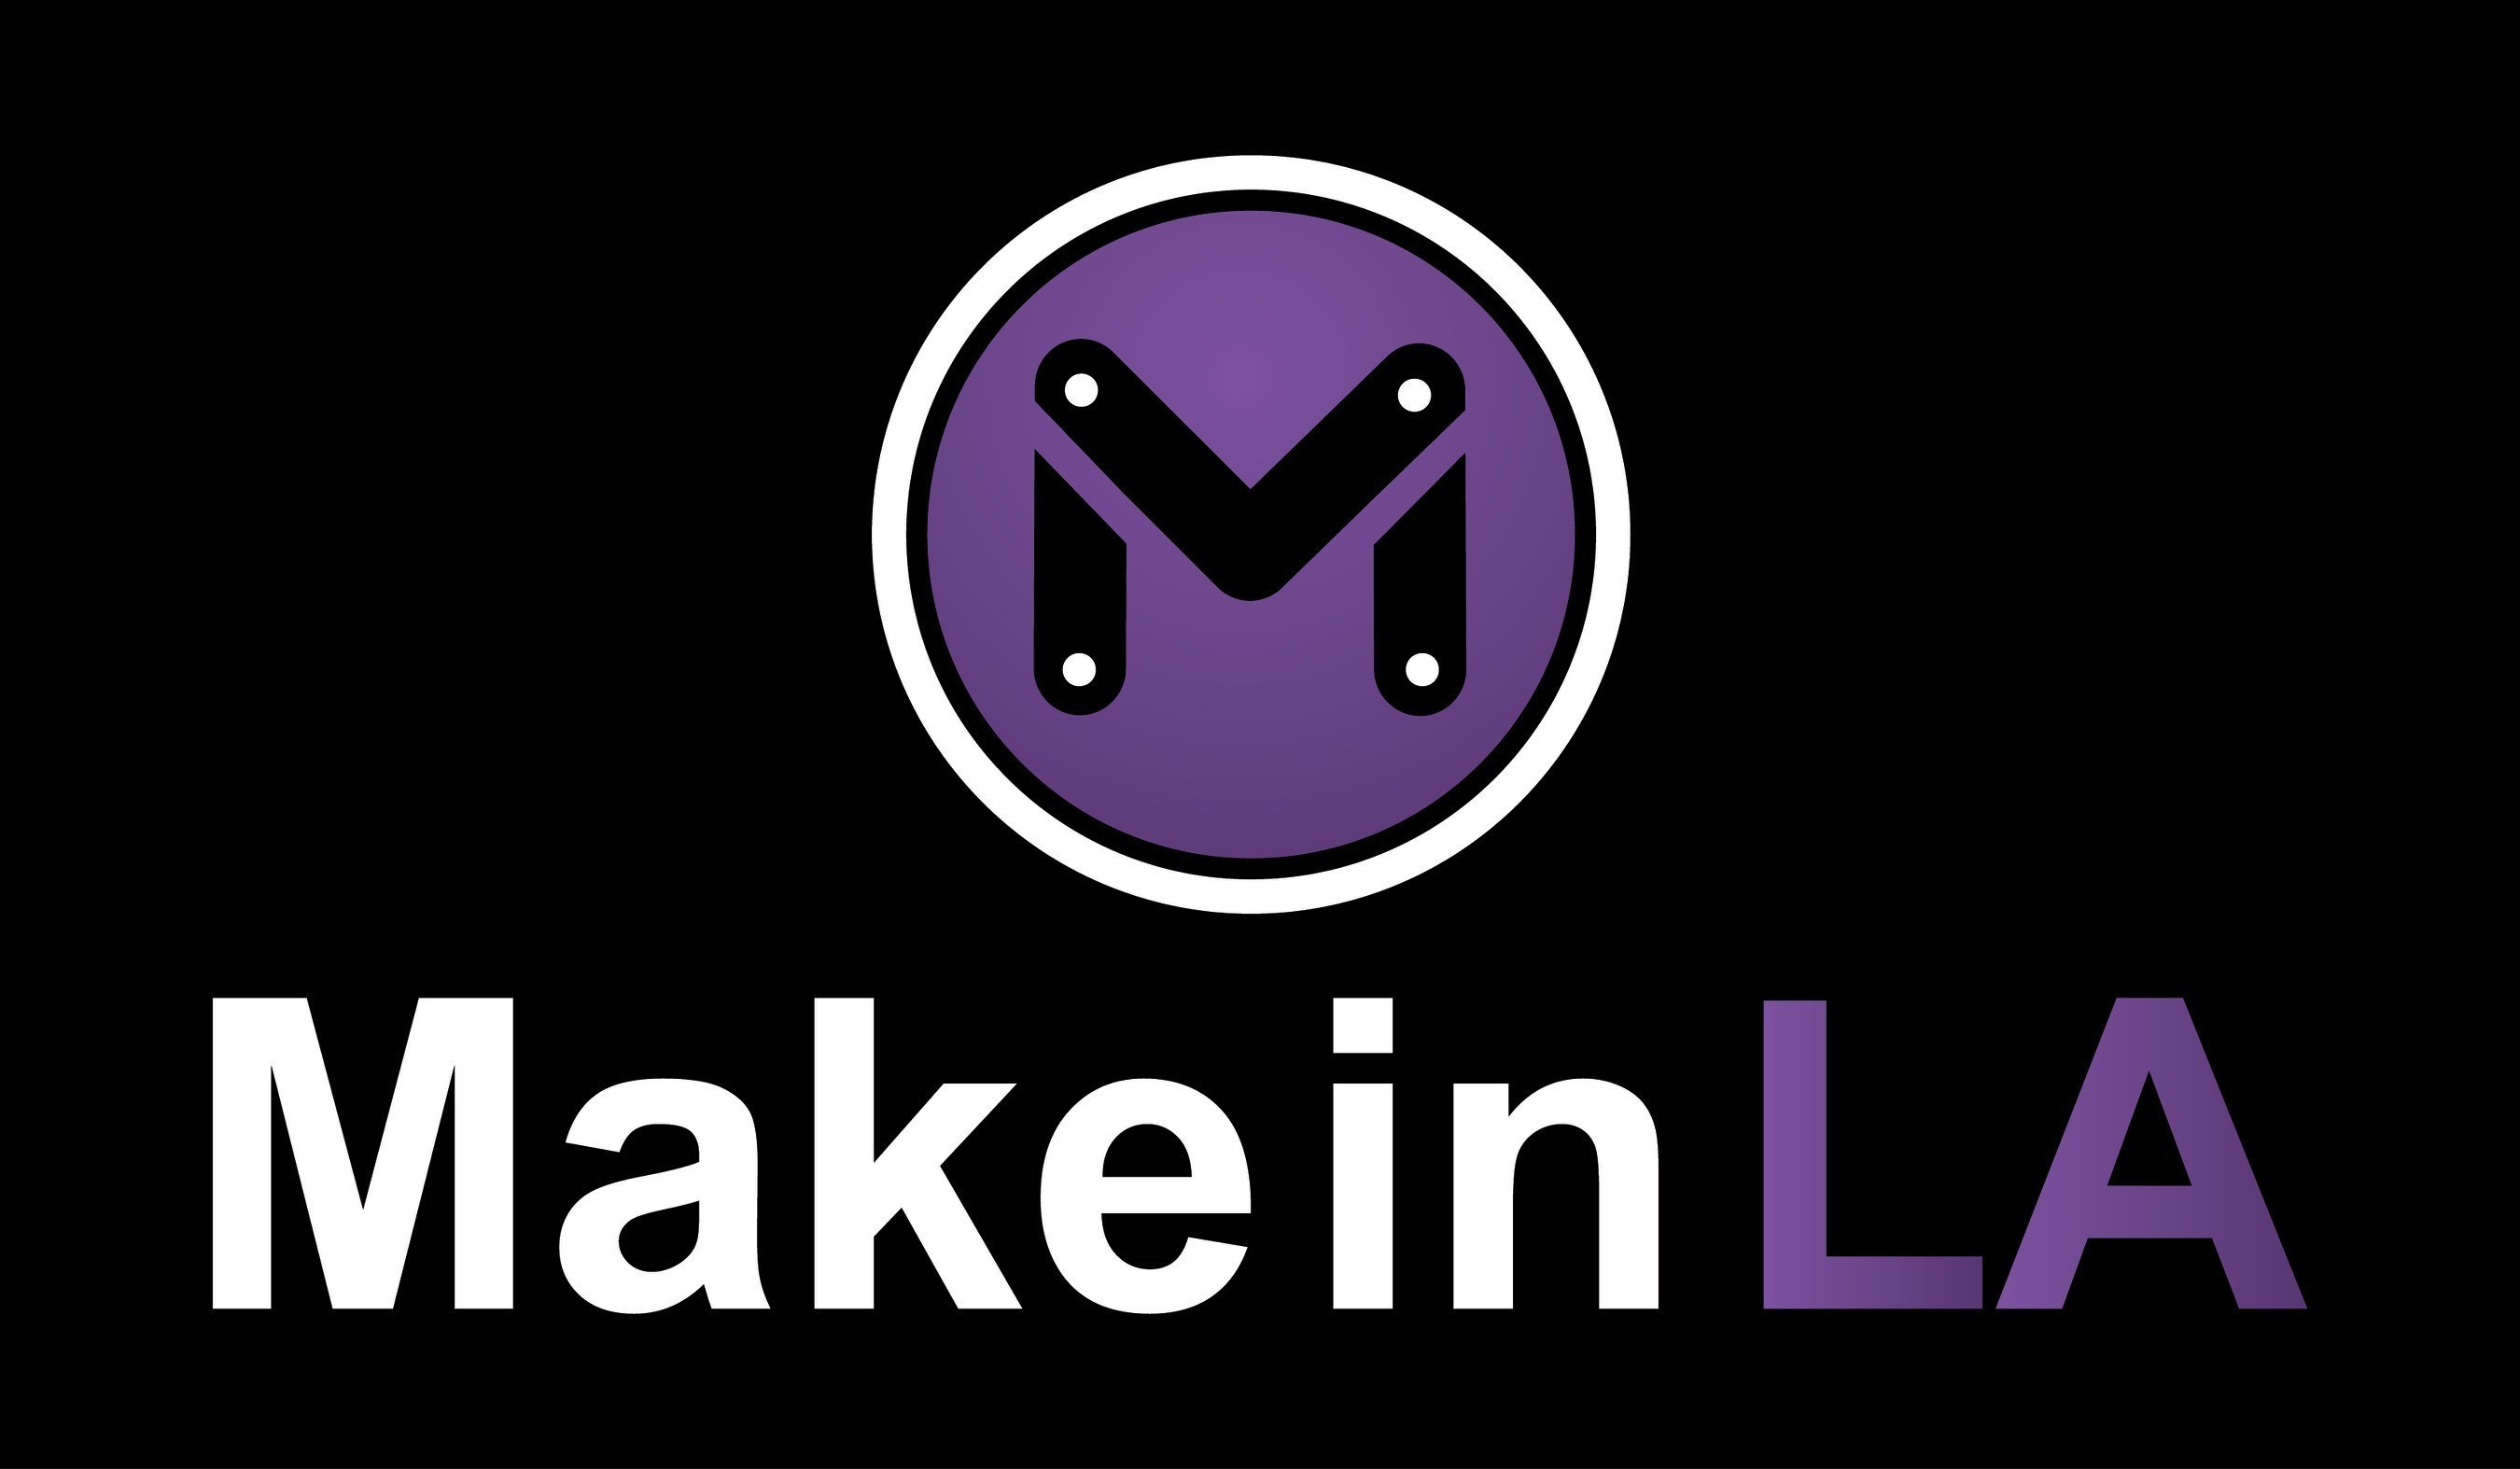 A new program, Make in LA, aims to develop entrepreneurs and